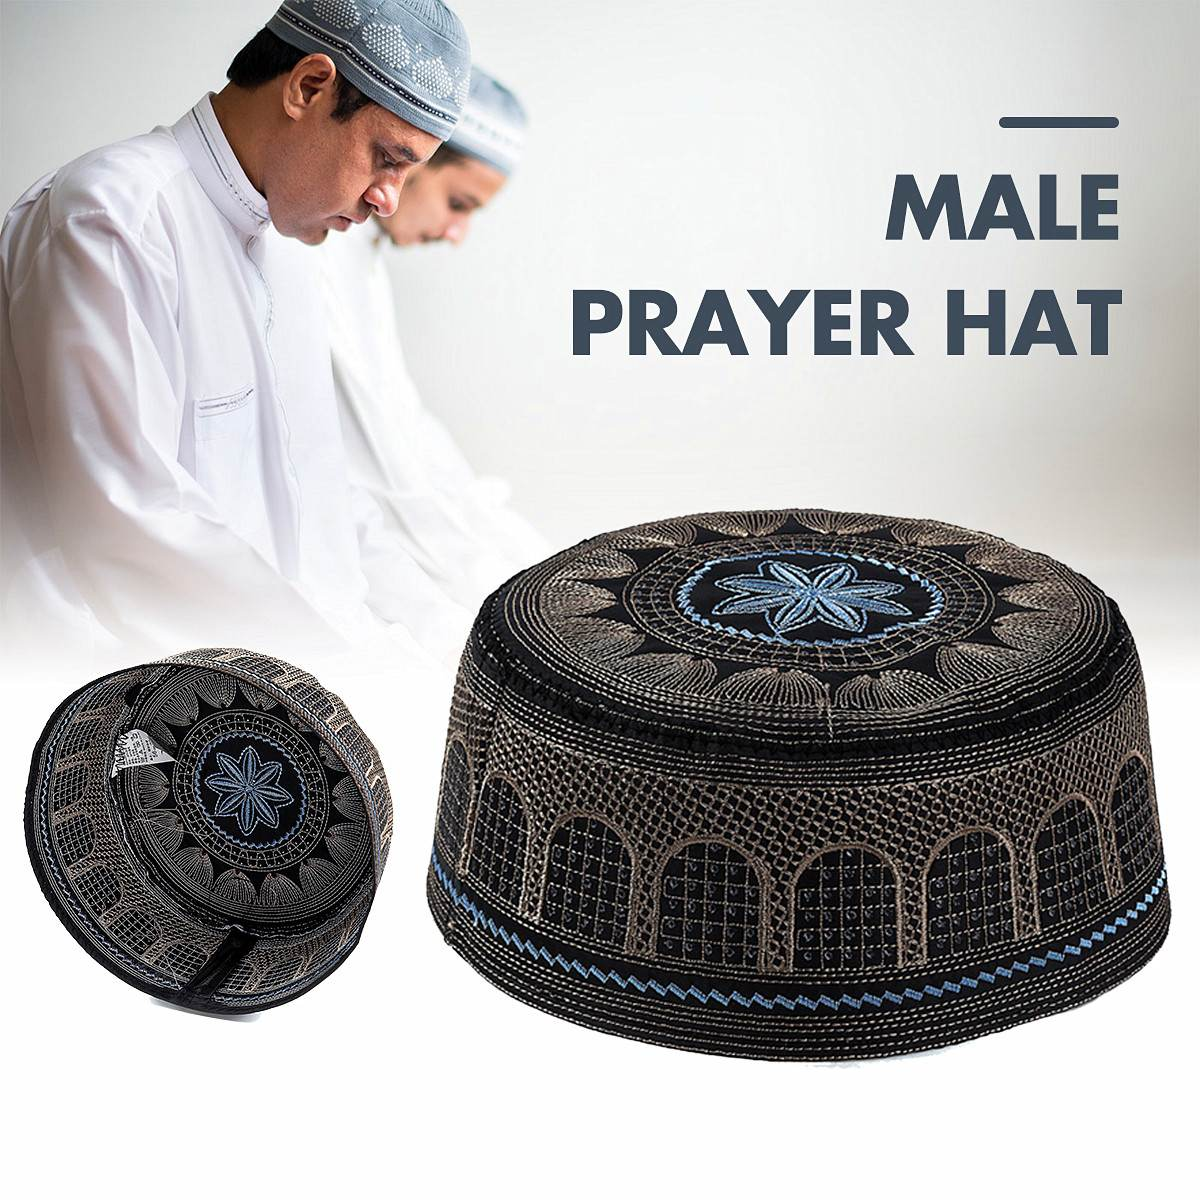 Newest Men's Muslim Prayer Cap Fashion Islamic Handsome Ethnic Clothing Arab Men's Muslim Fashion Accessories Crochet Islamic